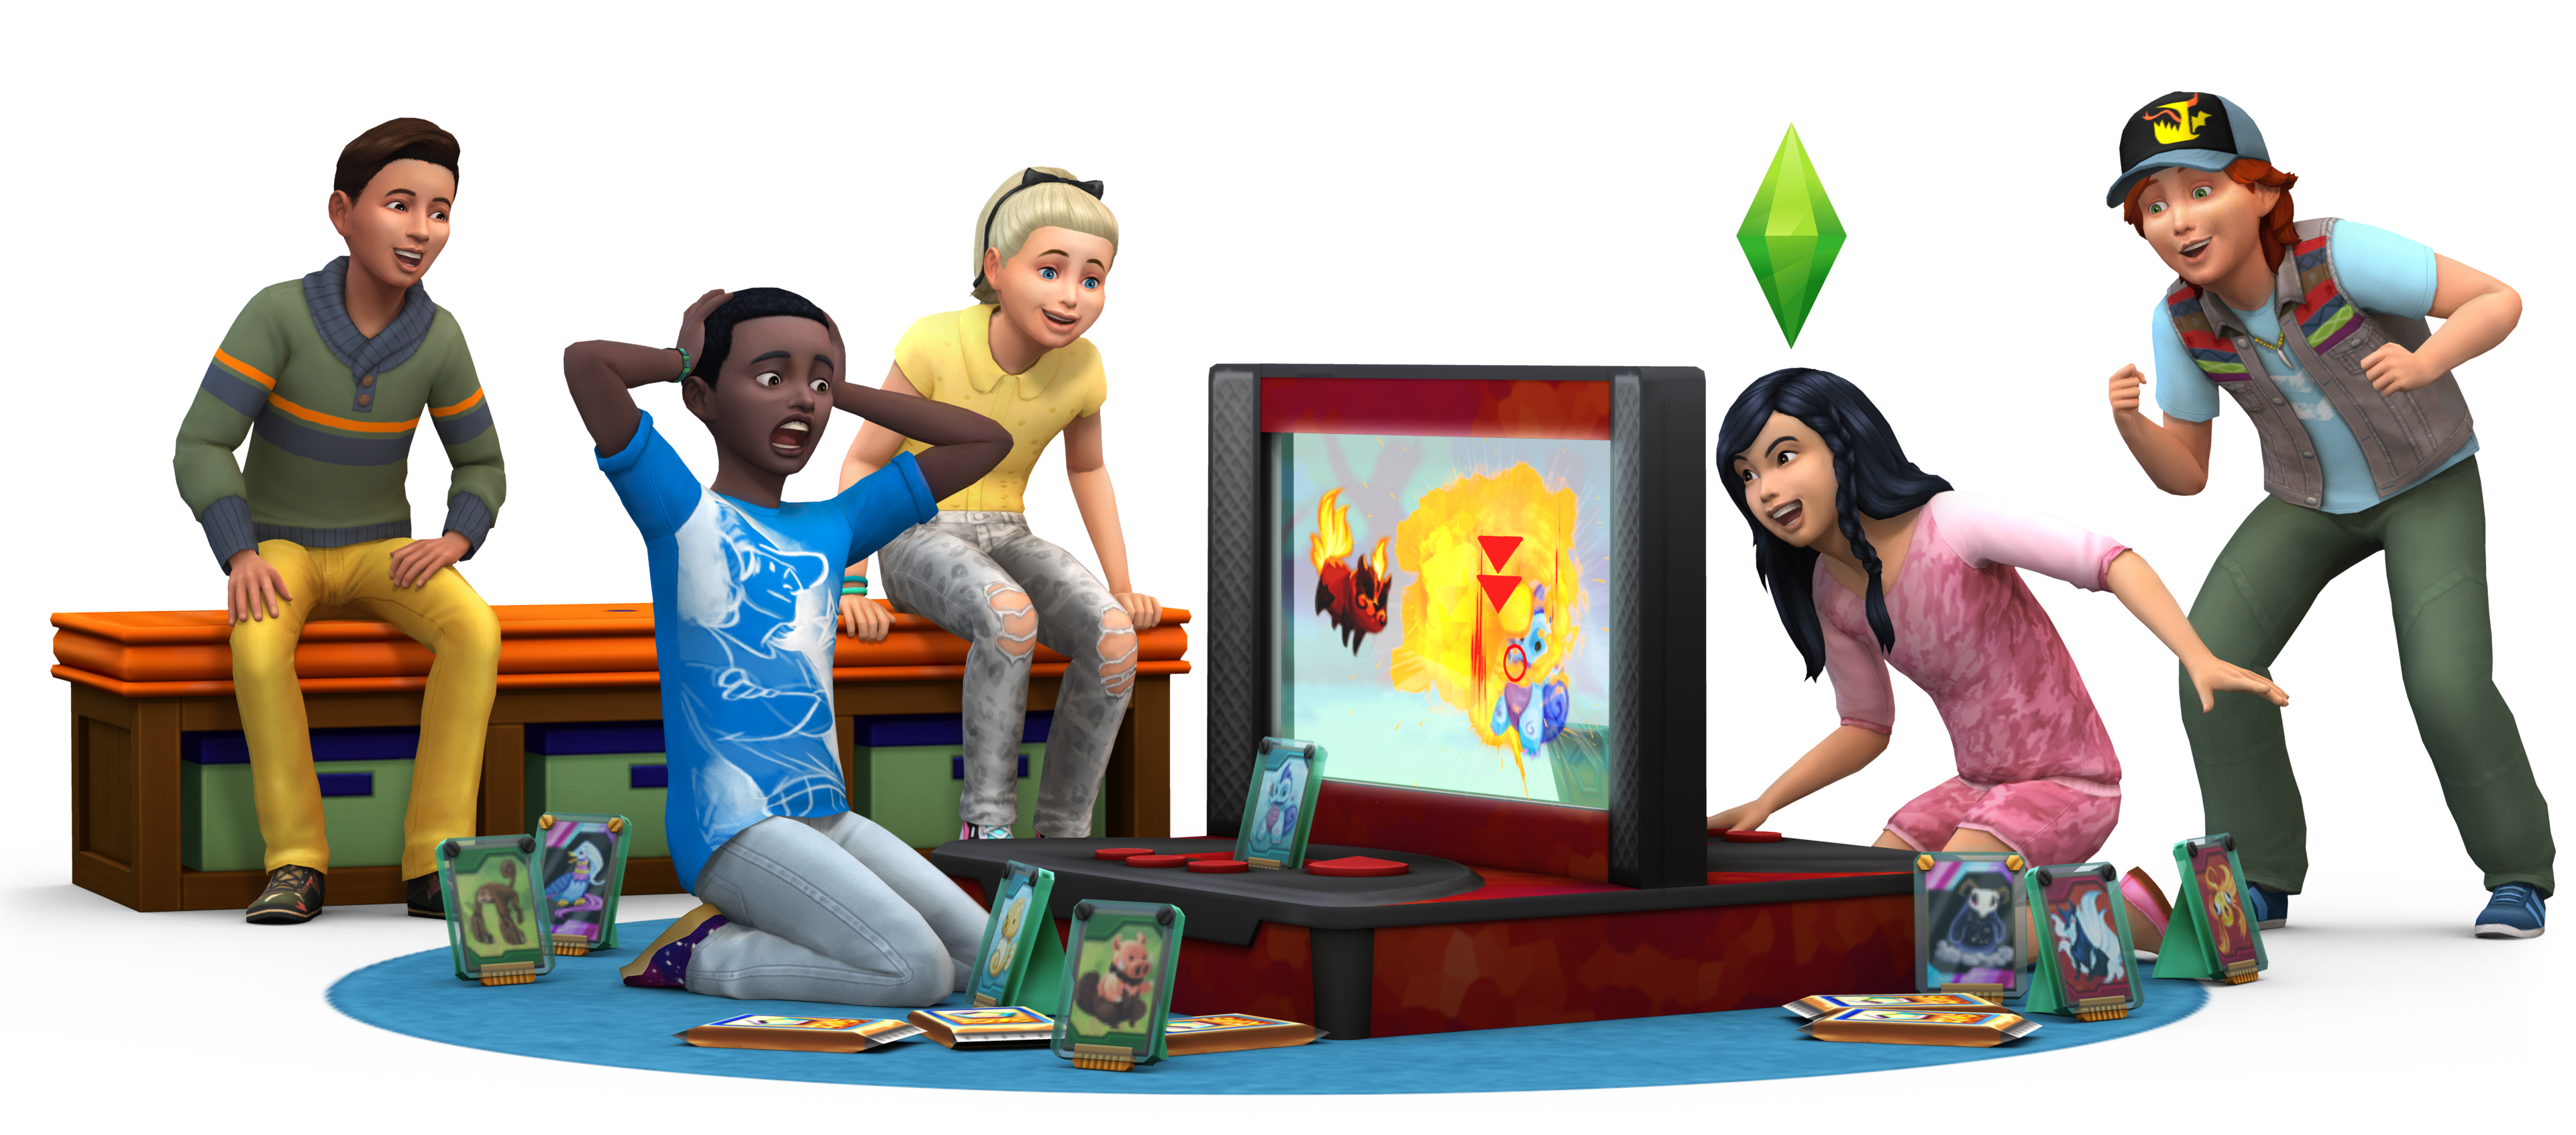 Sims 4 Images The Sims 4: Kids Room Stuff Render HD Wallpaper And  Background Photos